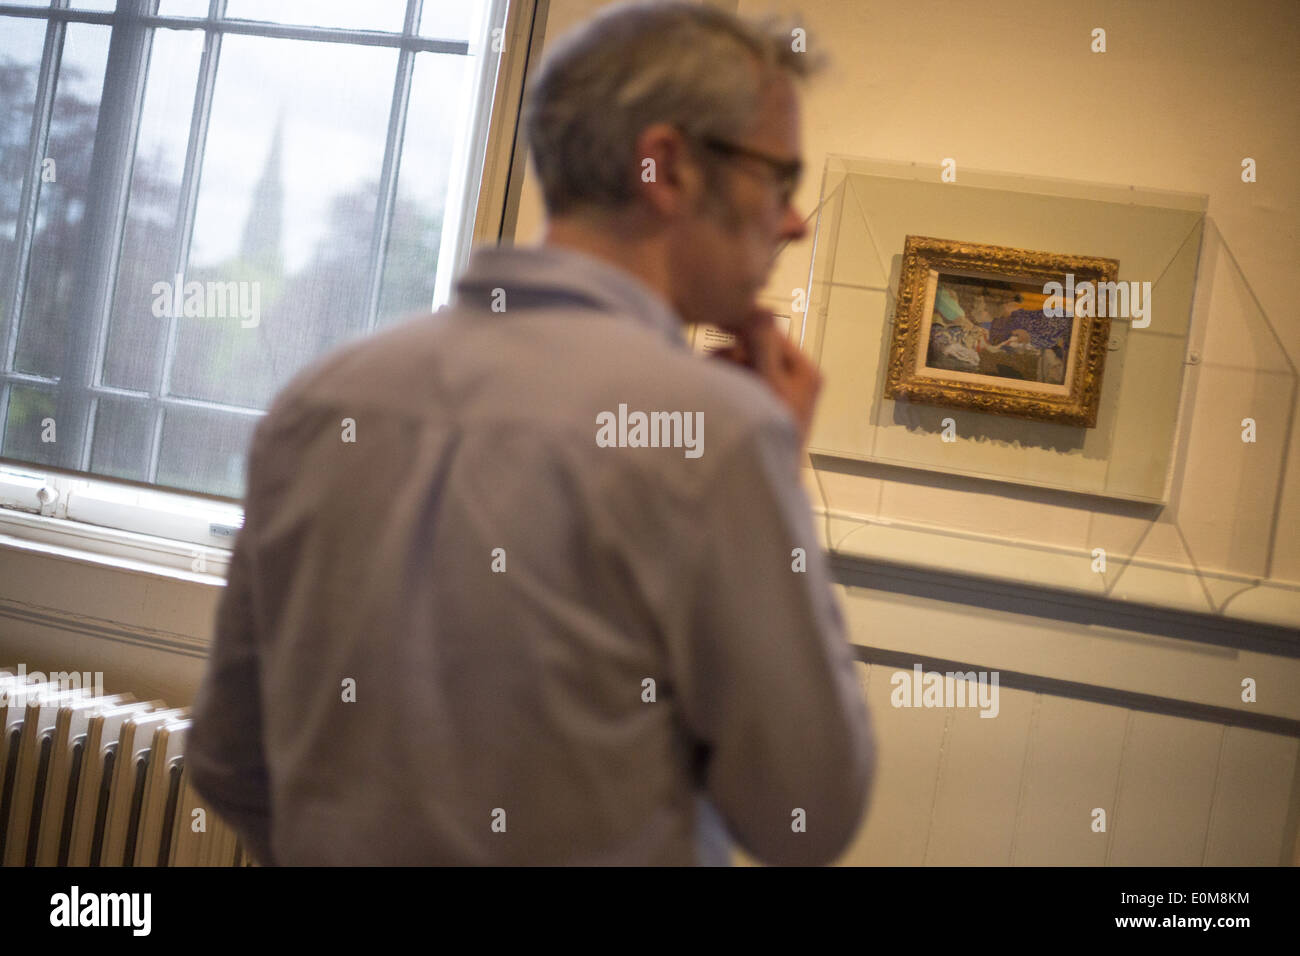 Scottish National Gallery of Modern Art, with people looking at paintings by Edouard Vuillard, in Edinburgh, Scotland - Stock Image